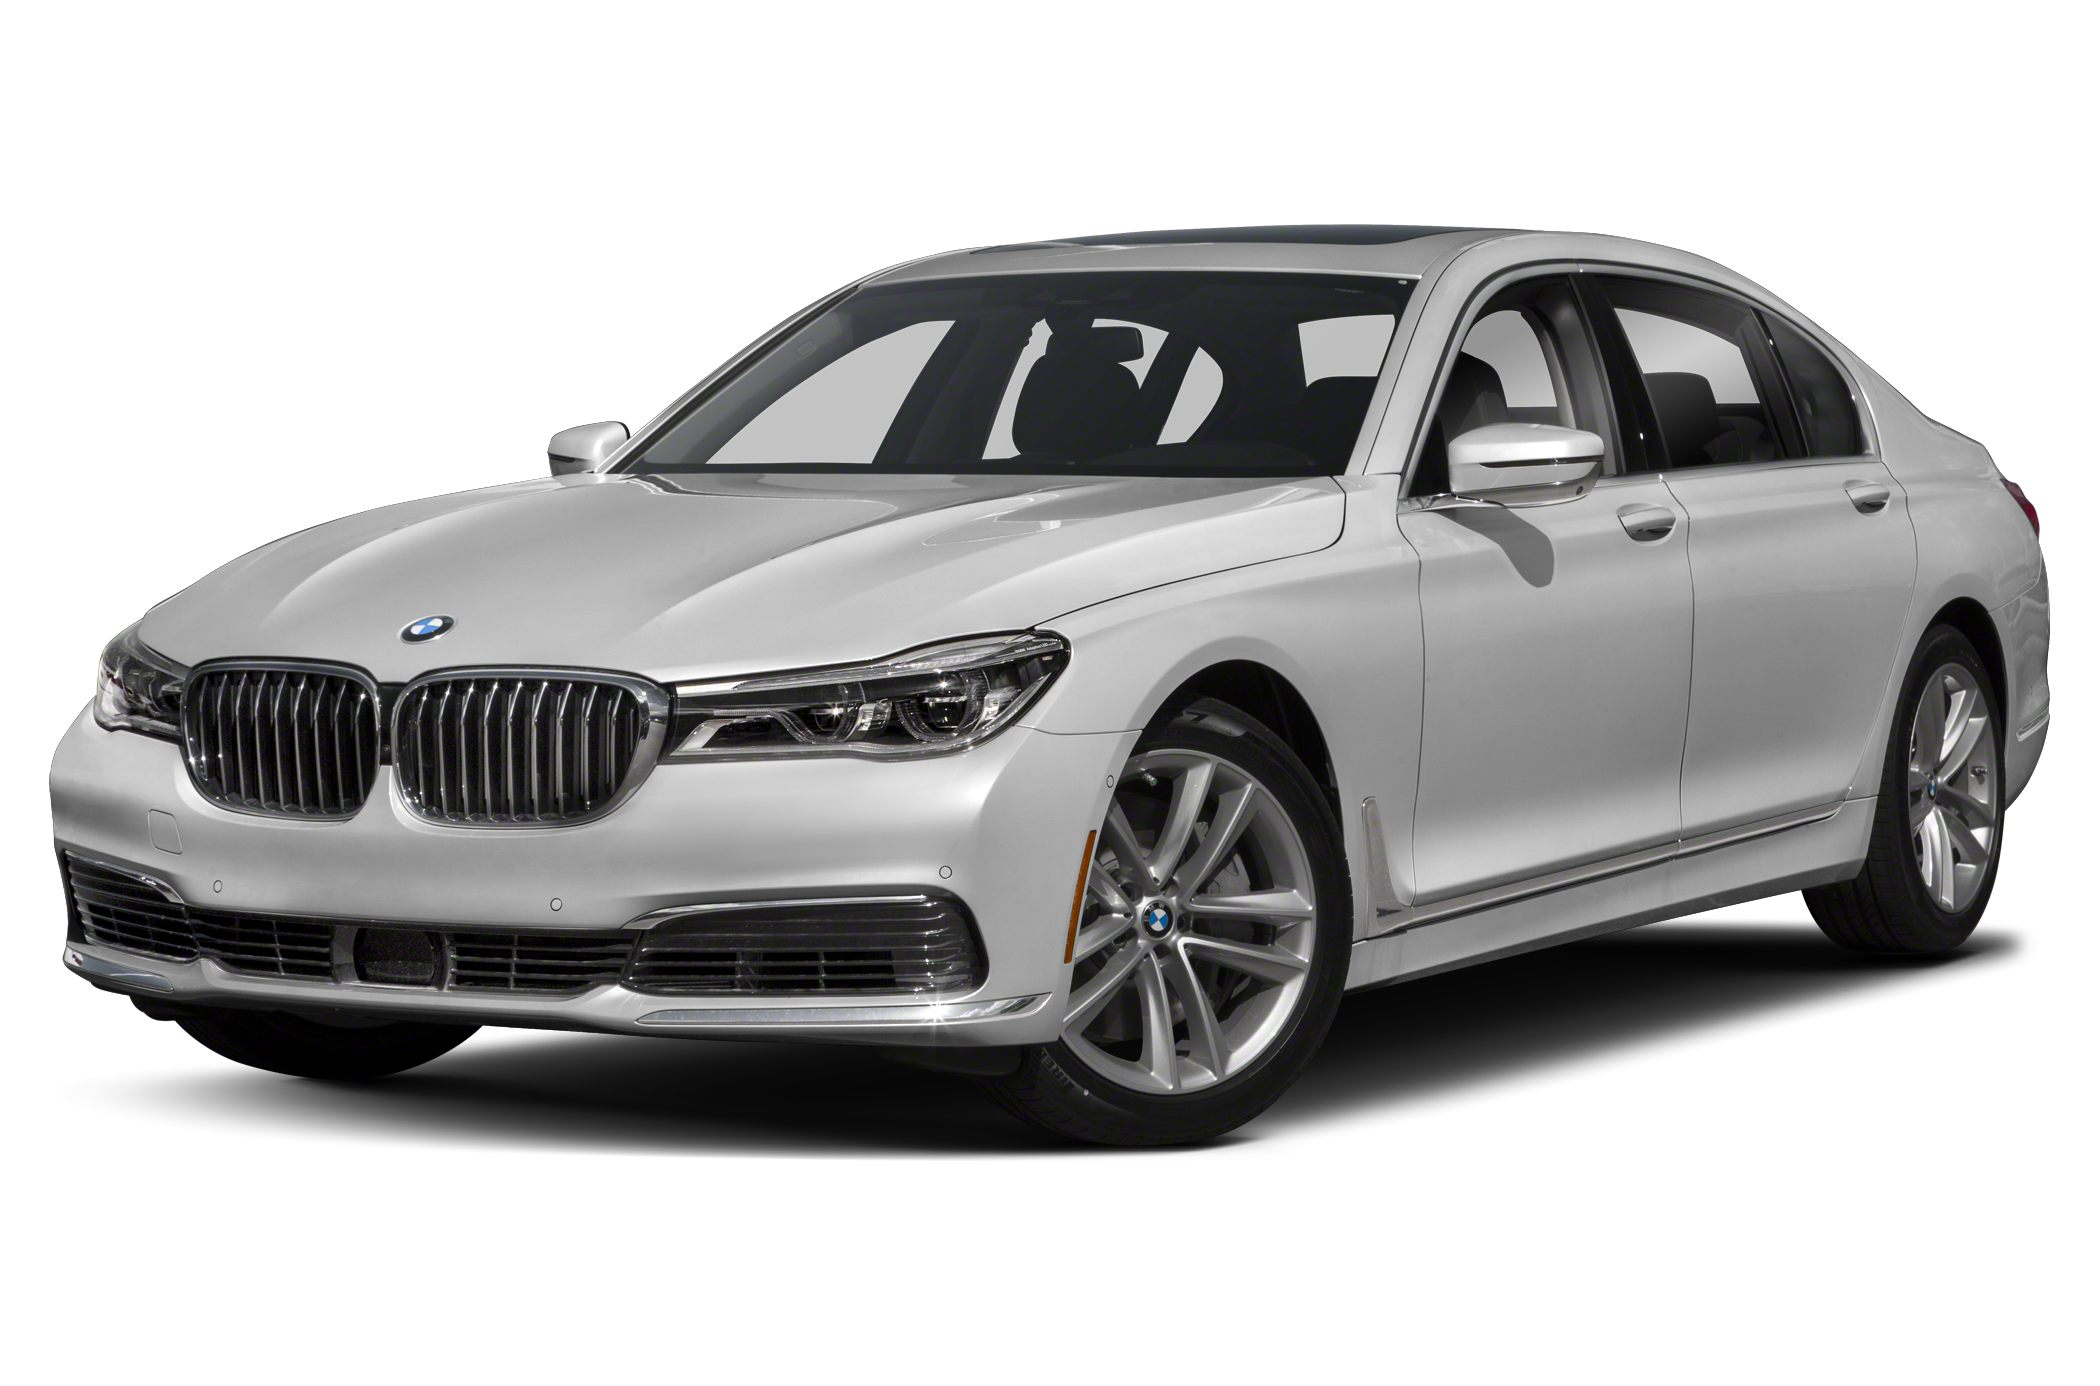 91 The 2019 BMW 750Li Xdrive Configurations